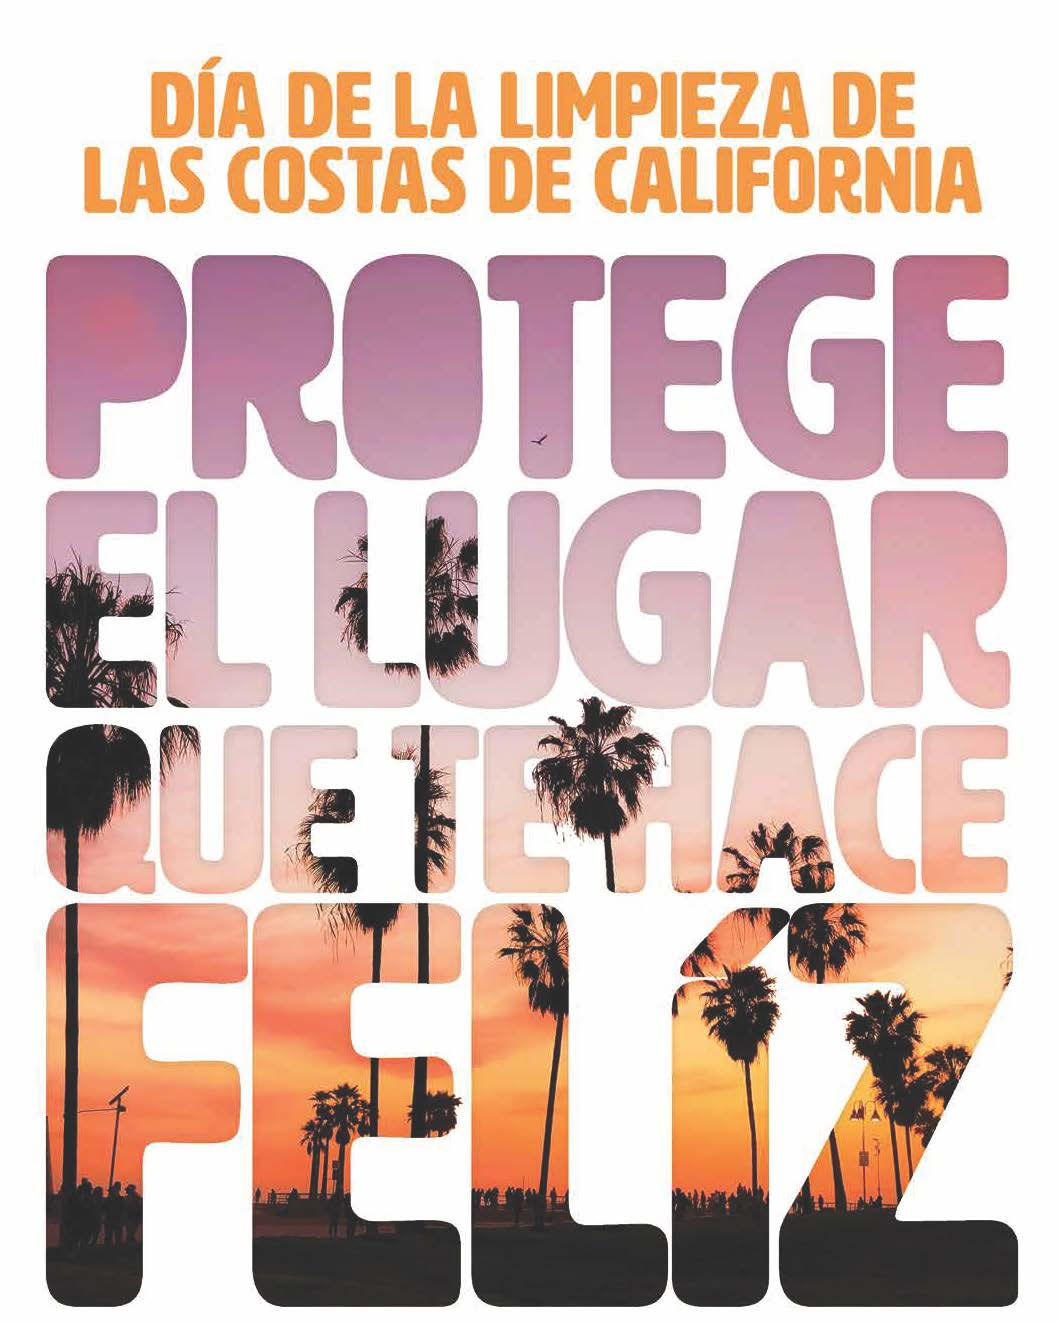 California Coastal Cleanup, Protect Your Happy Place. With image of palm trees and a sunset behind the letters